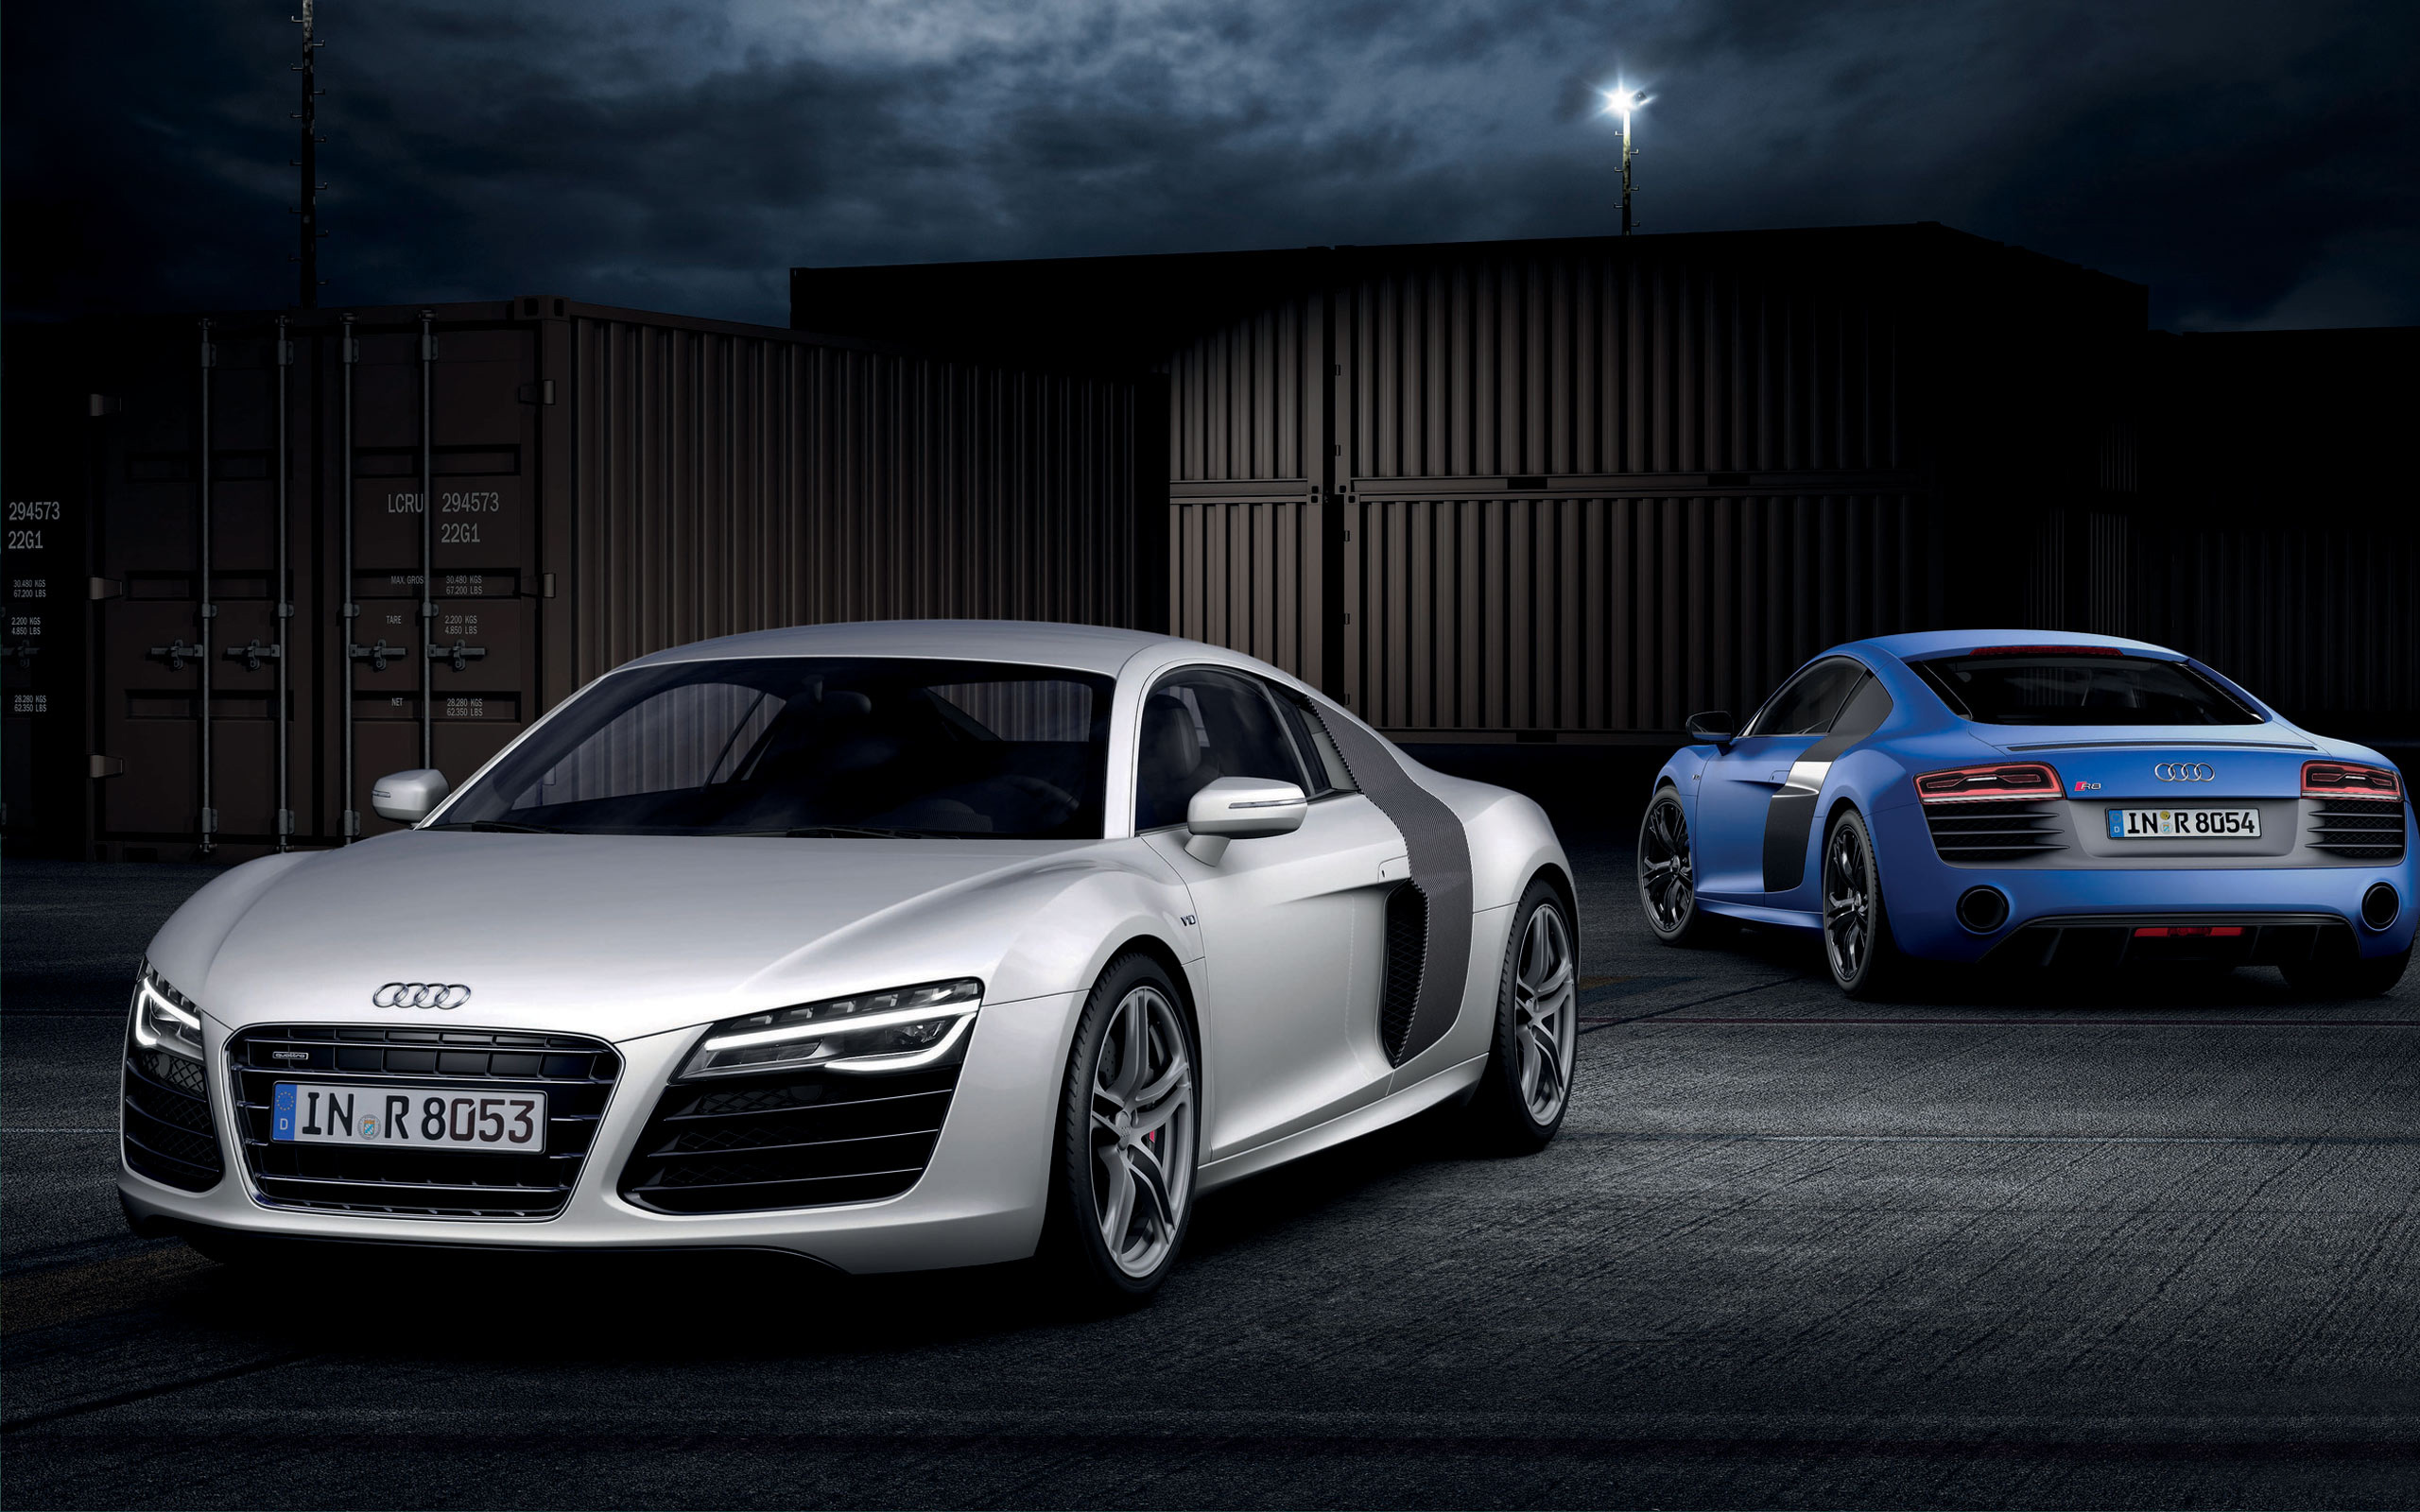 2013 Audi R8 V10 Wallpaper galleryhipcom   The Hippest 2560x1600